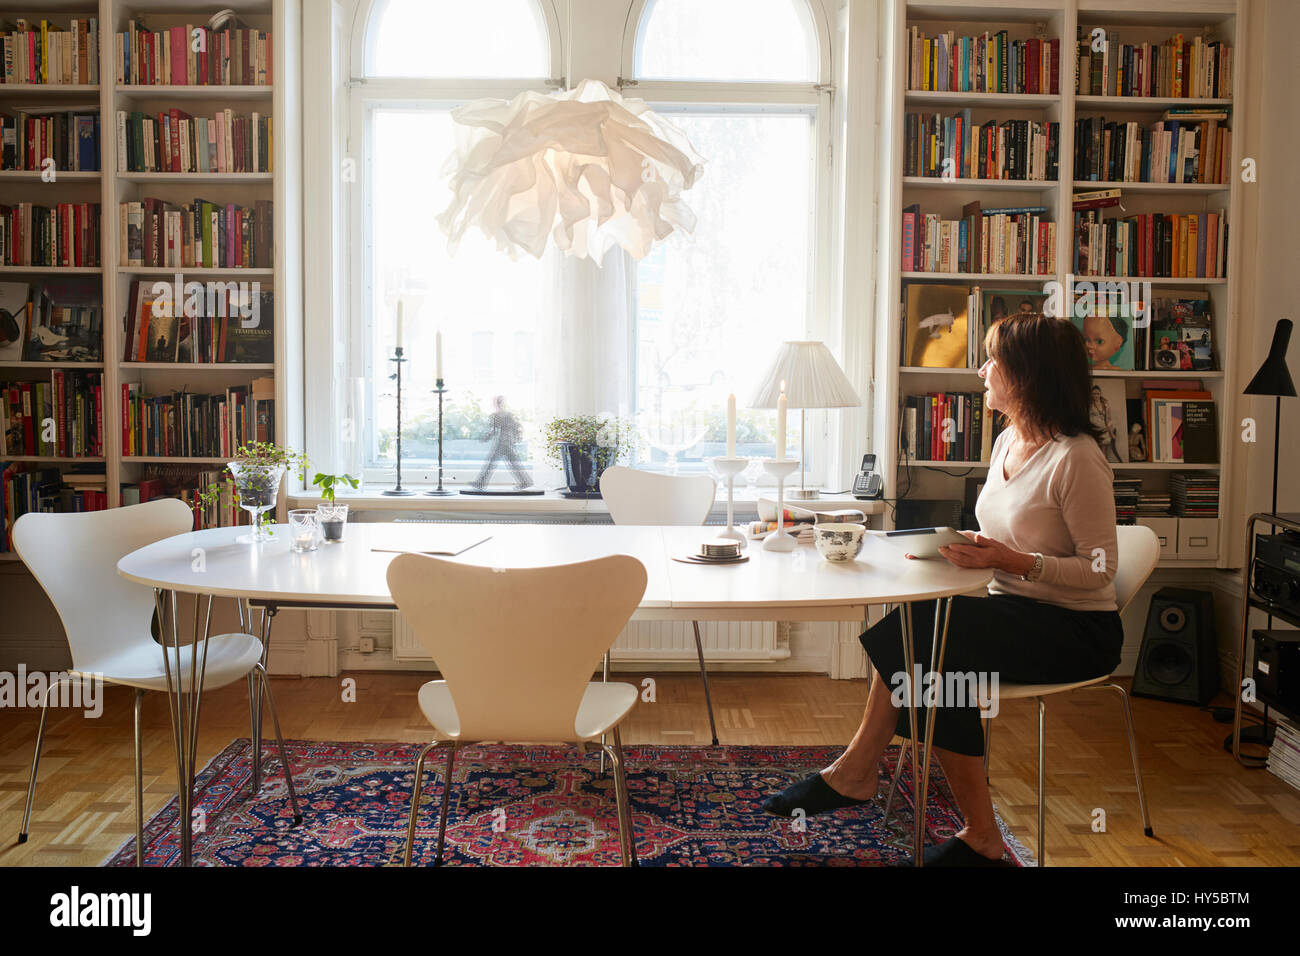 Sweden, Woman sitting alone at table - Stock Image